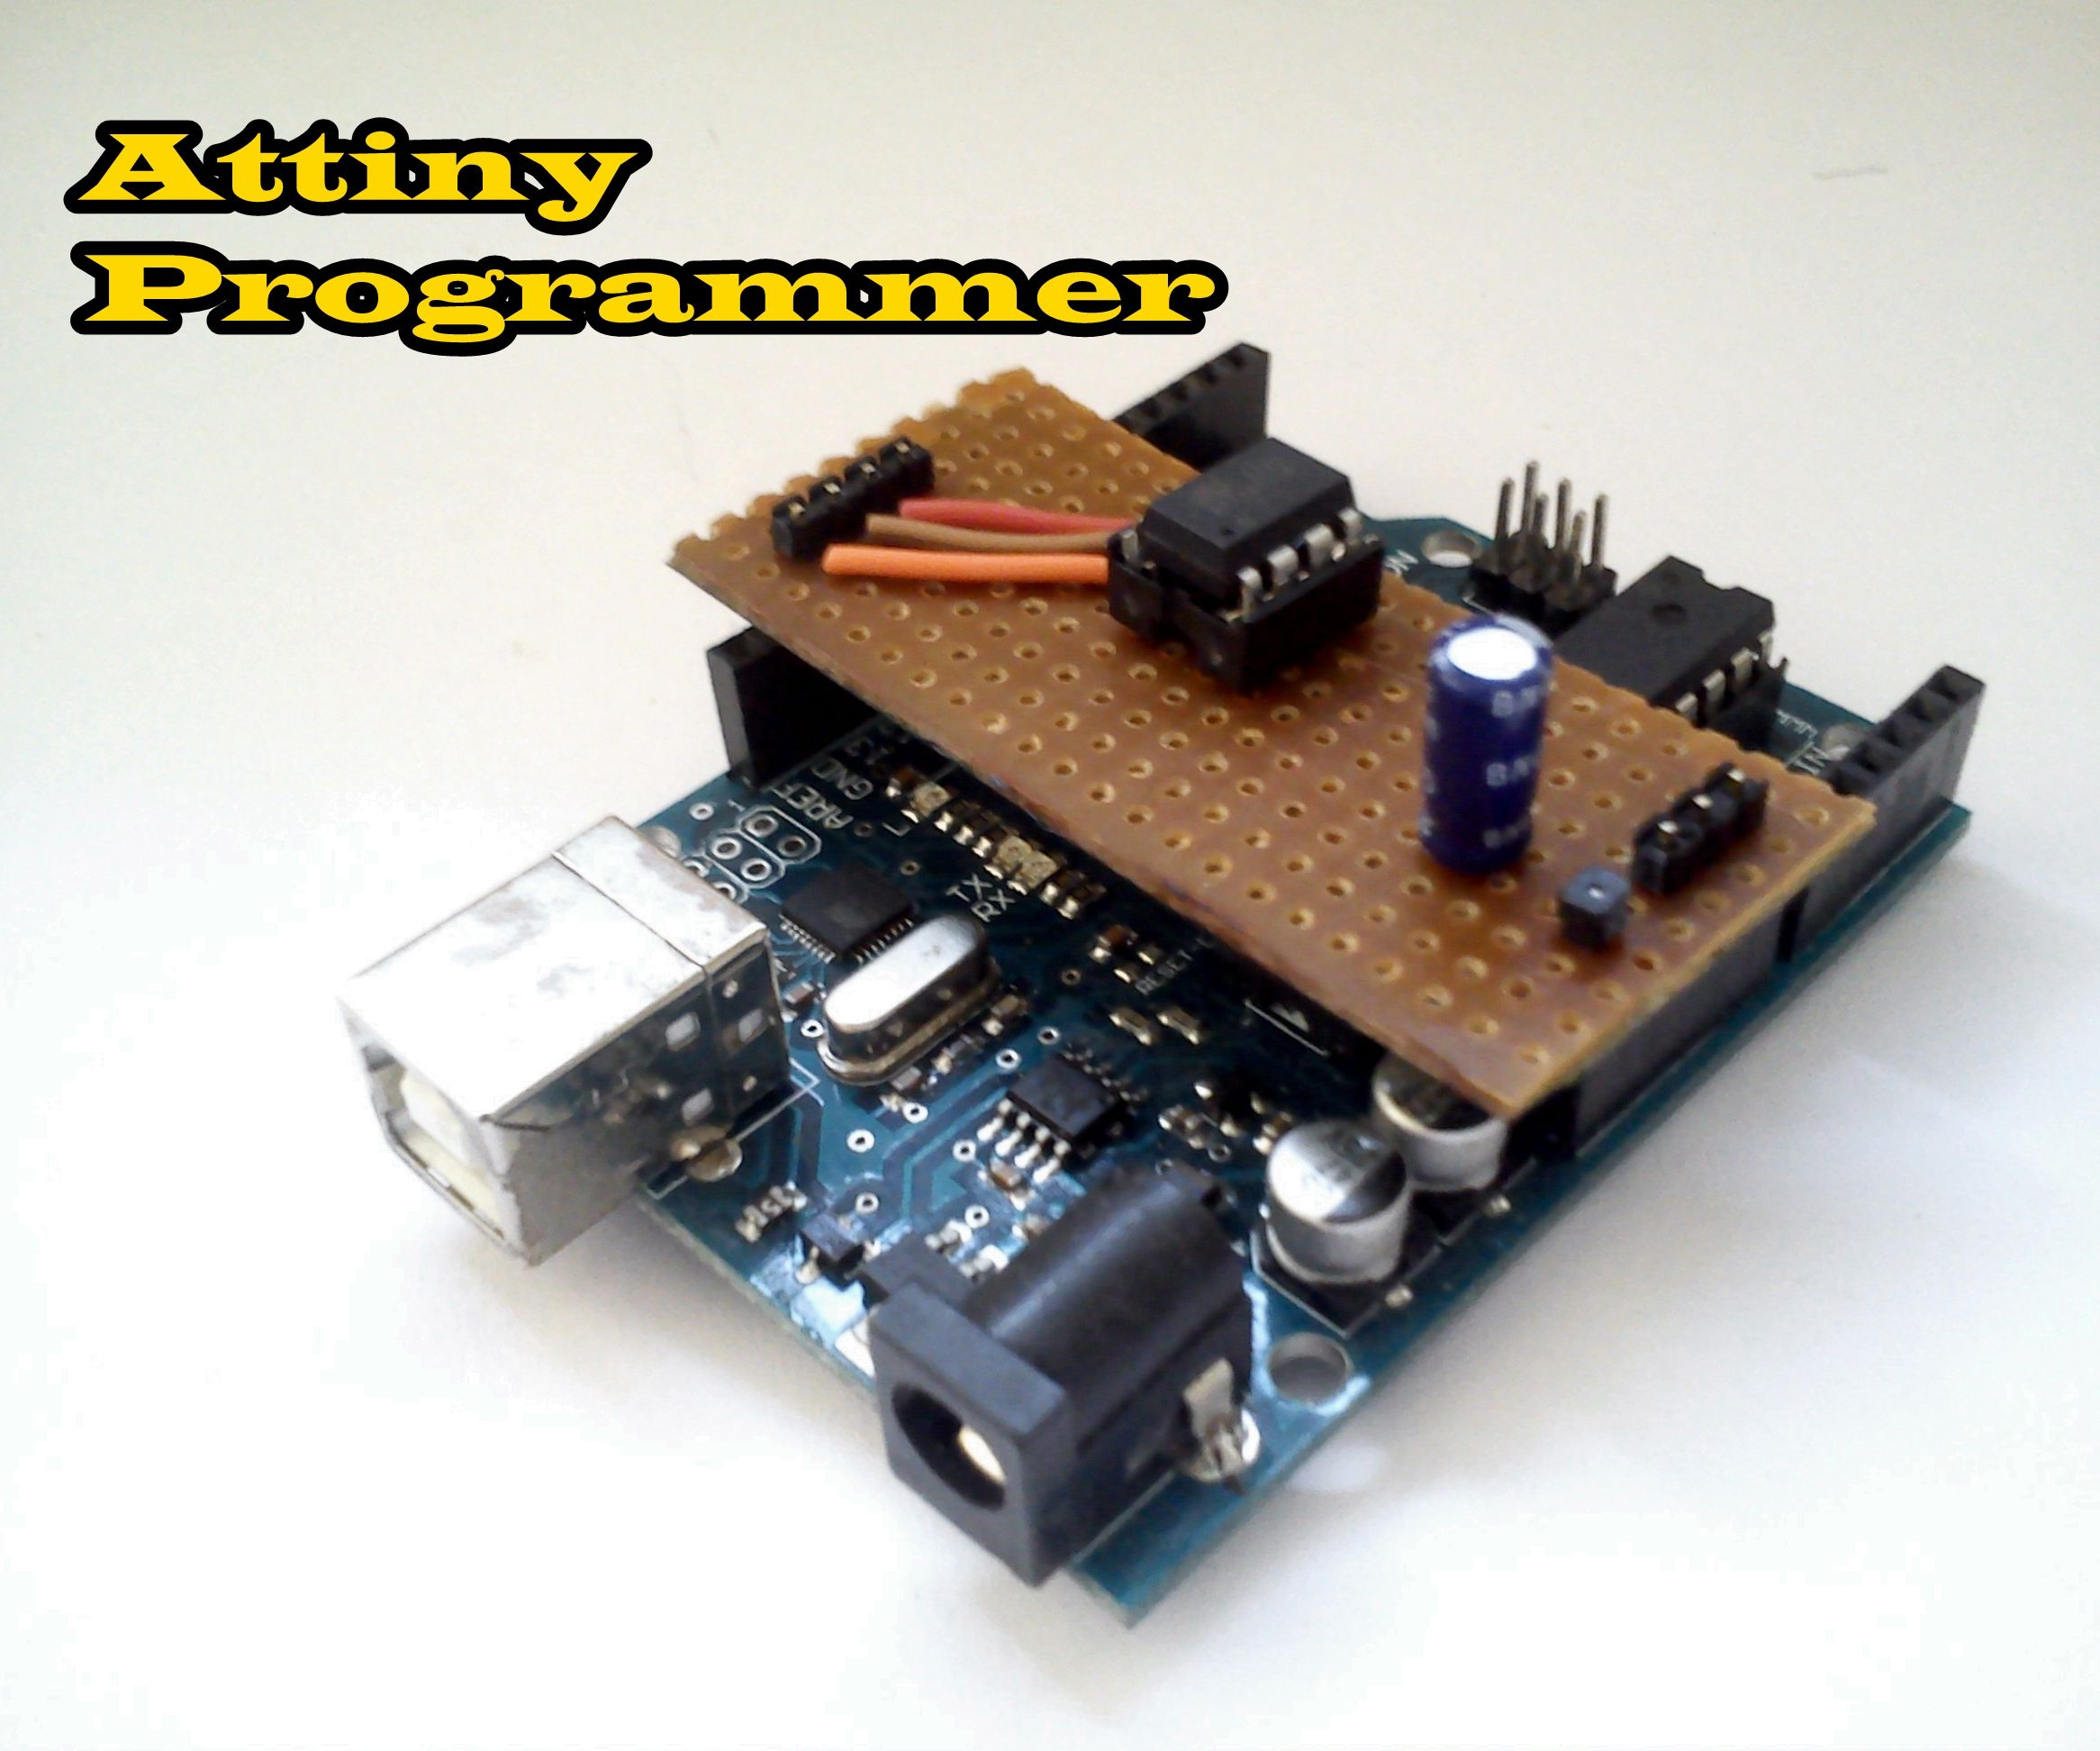 How to program attiny using arduino uno